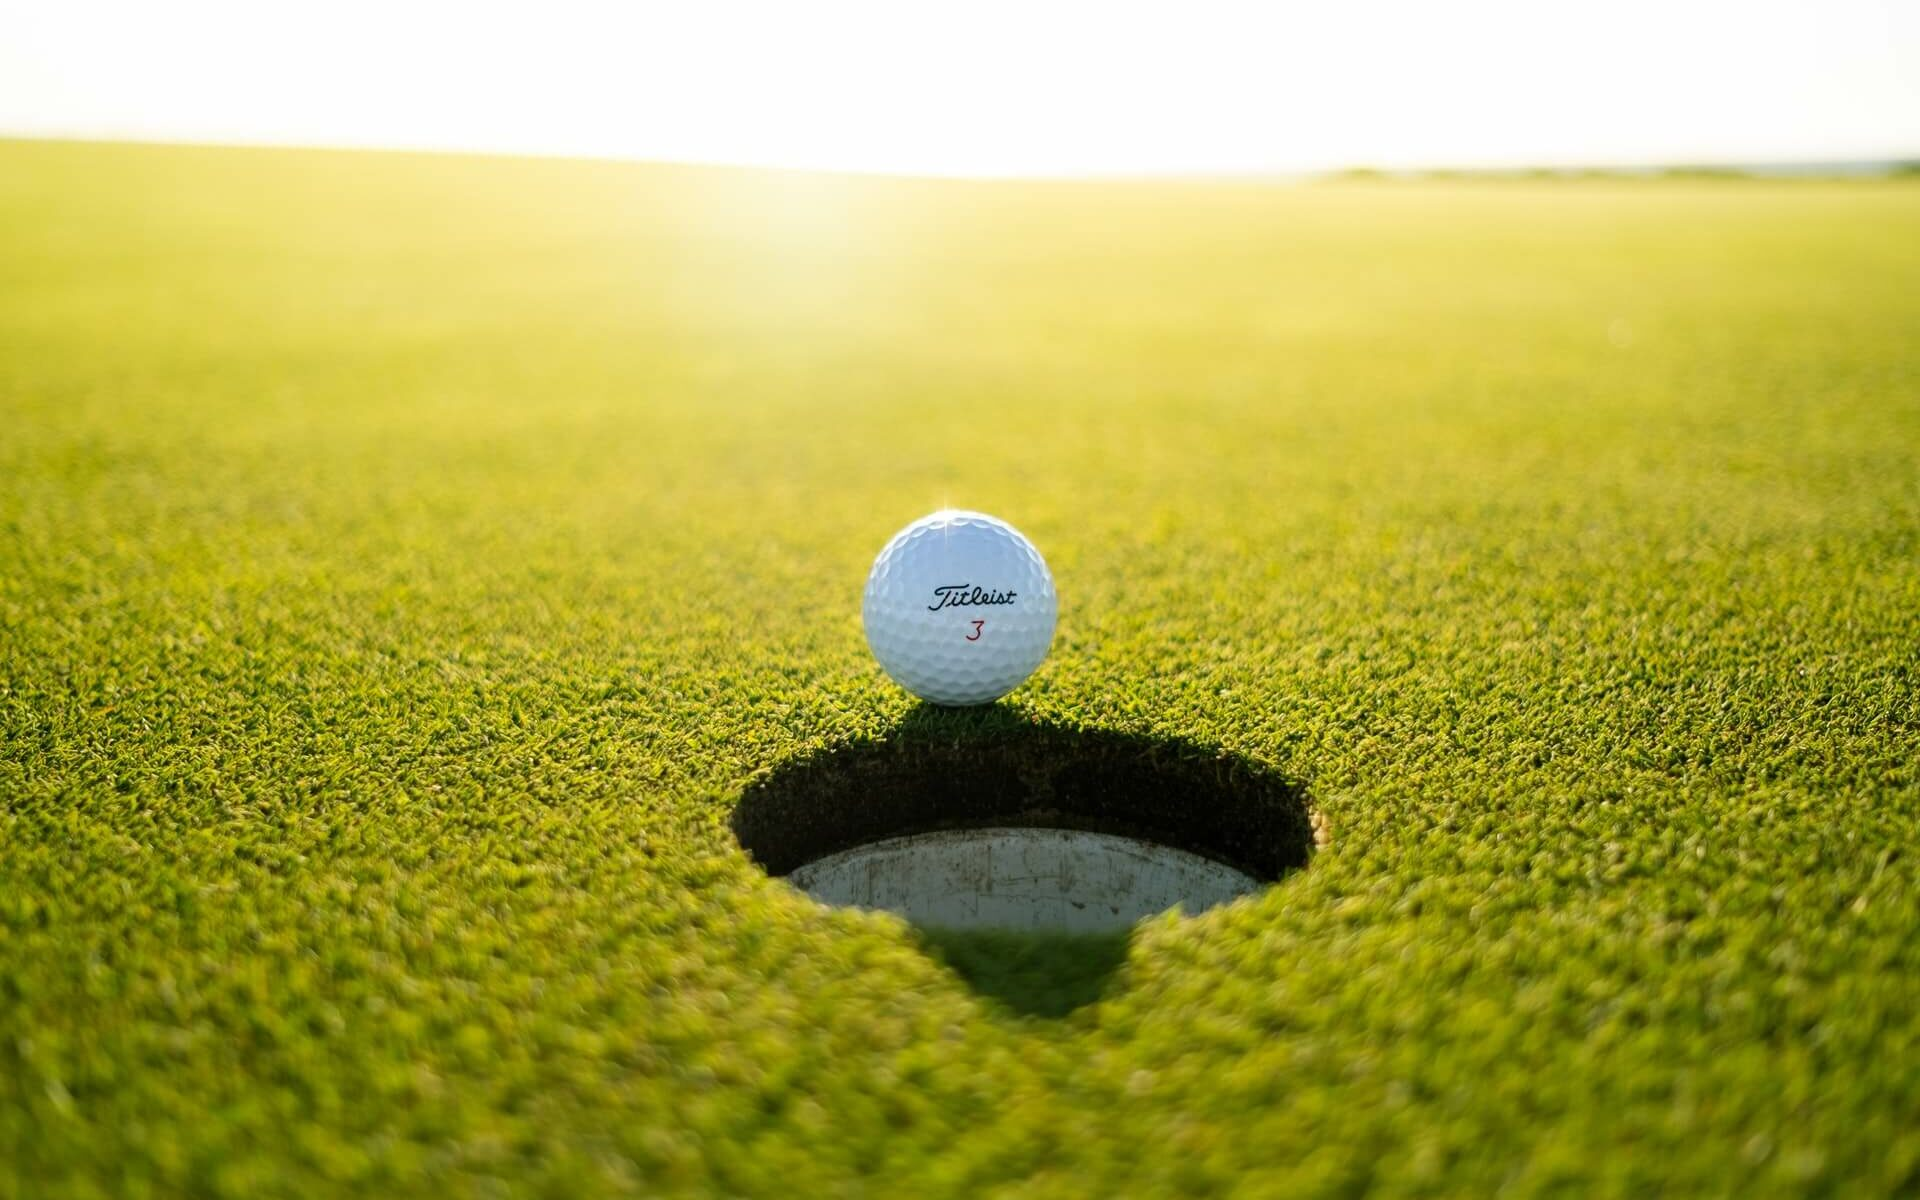 A Titleist 3 golf ball sitting at the very edge of the hole on a putting green in the Bahamas